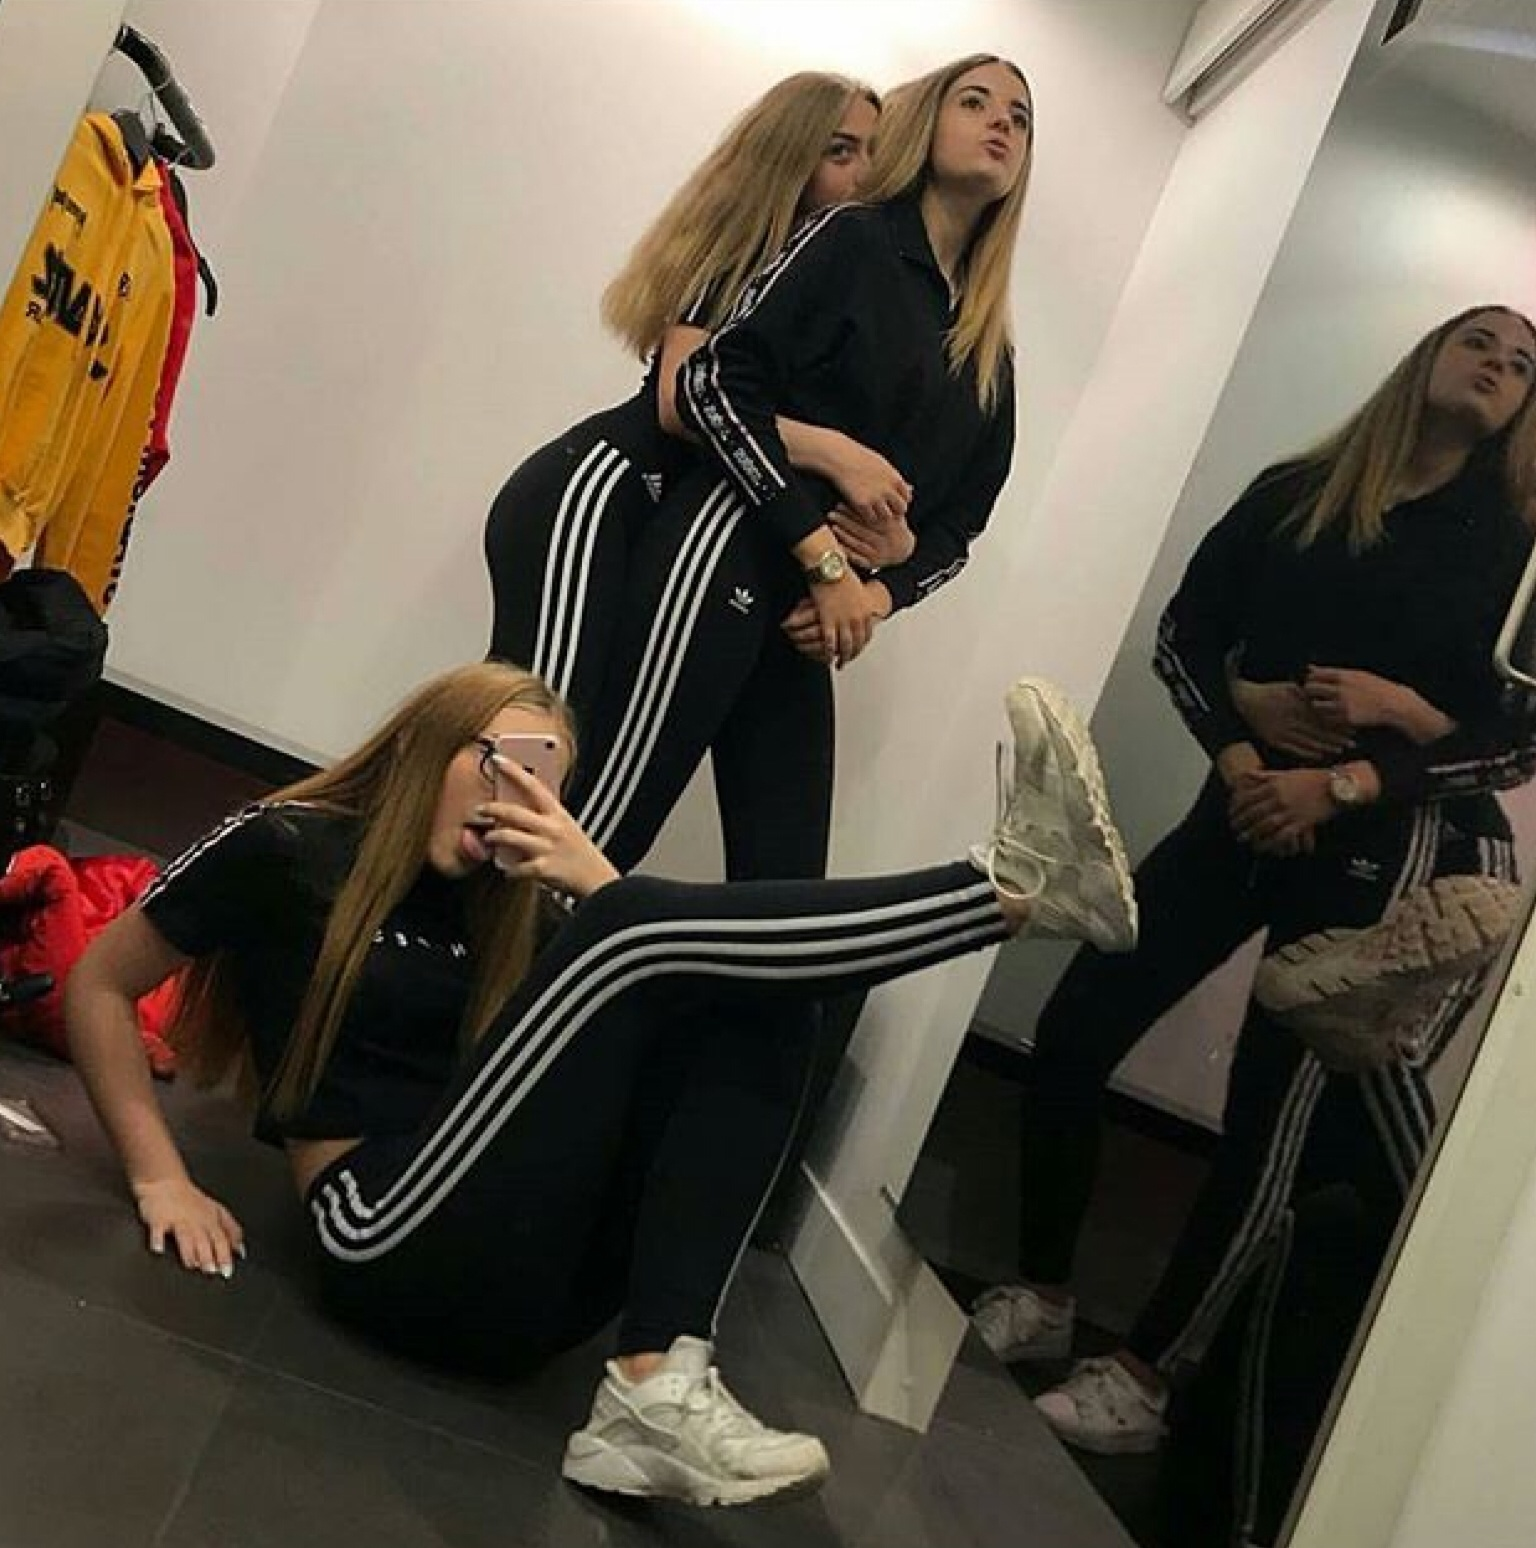 adidas, friends, friendship, funny, girls